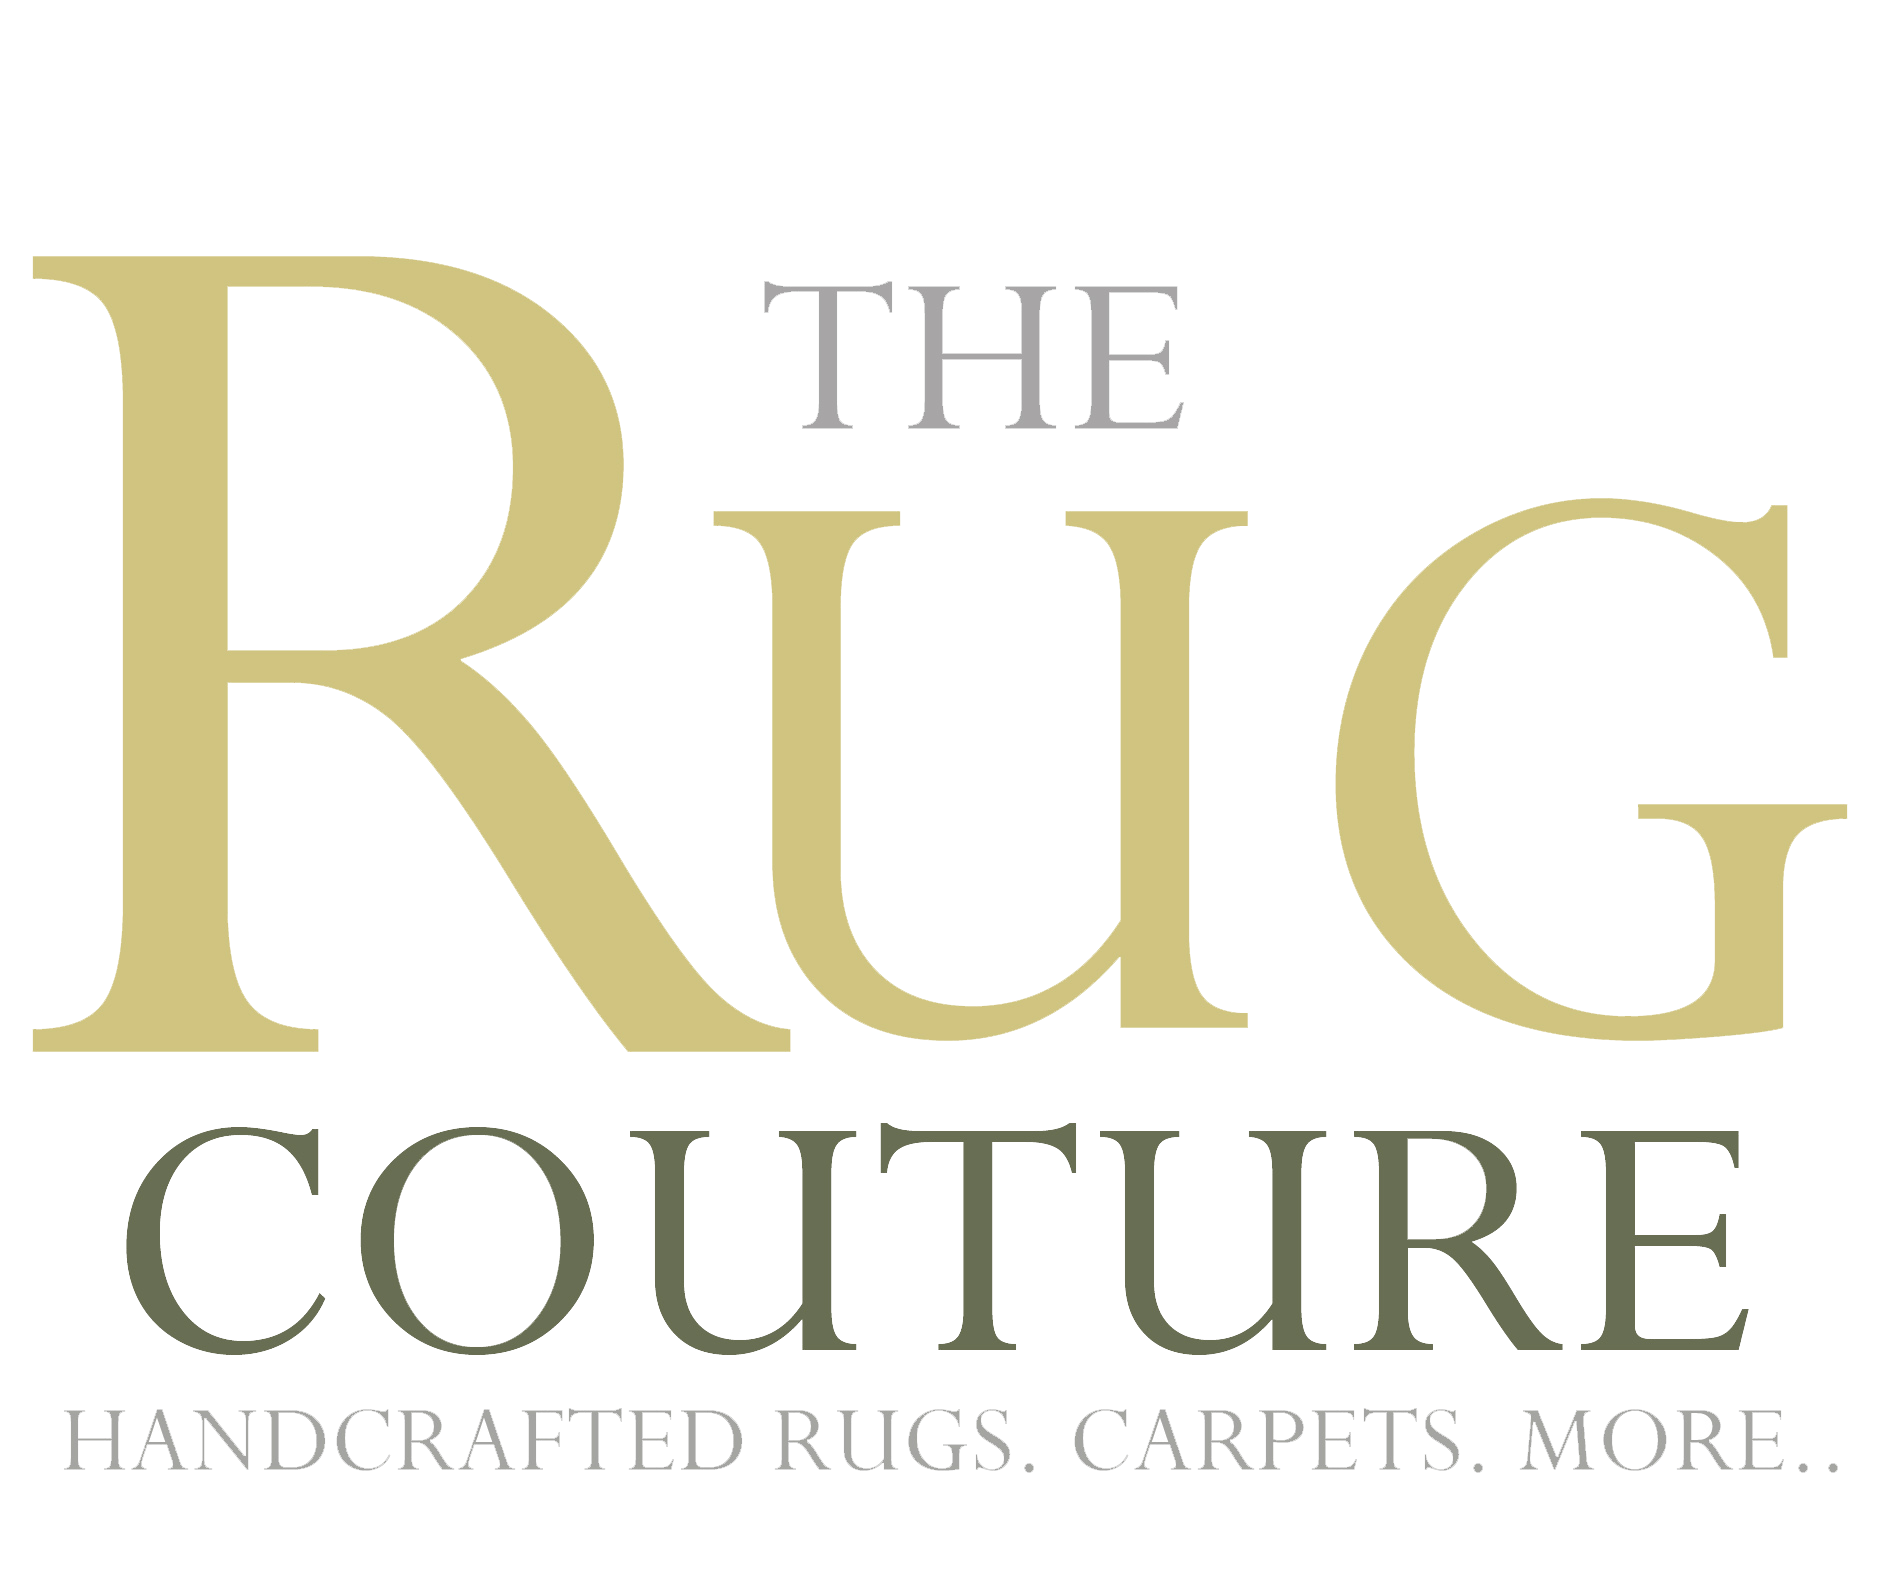 Therugcouture logo